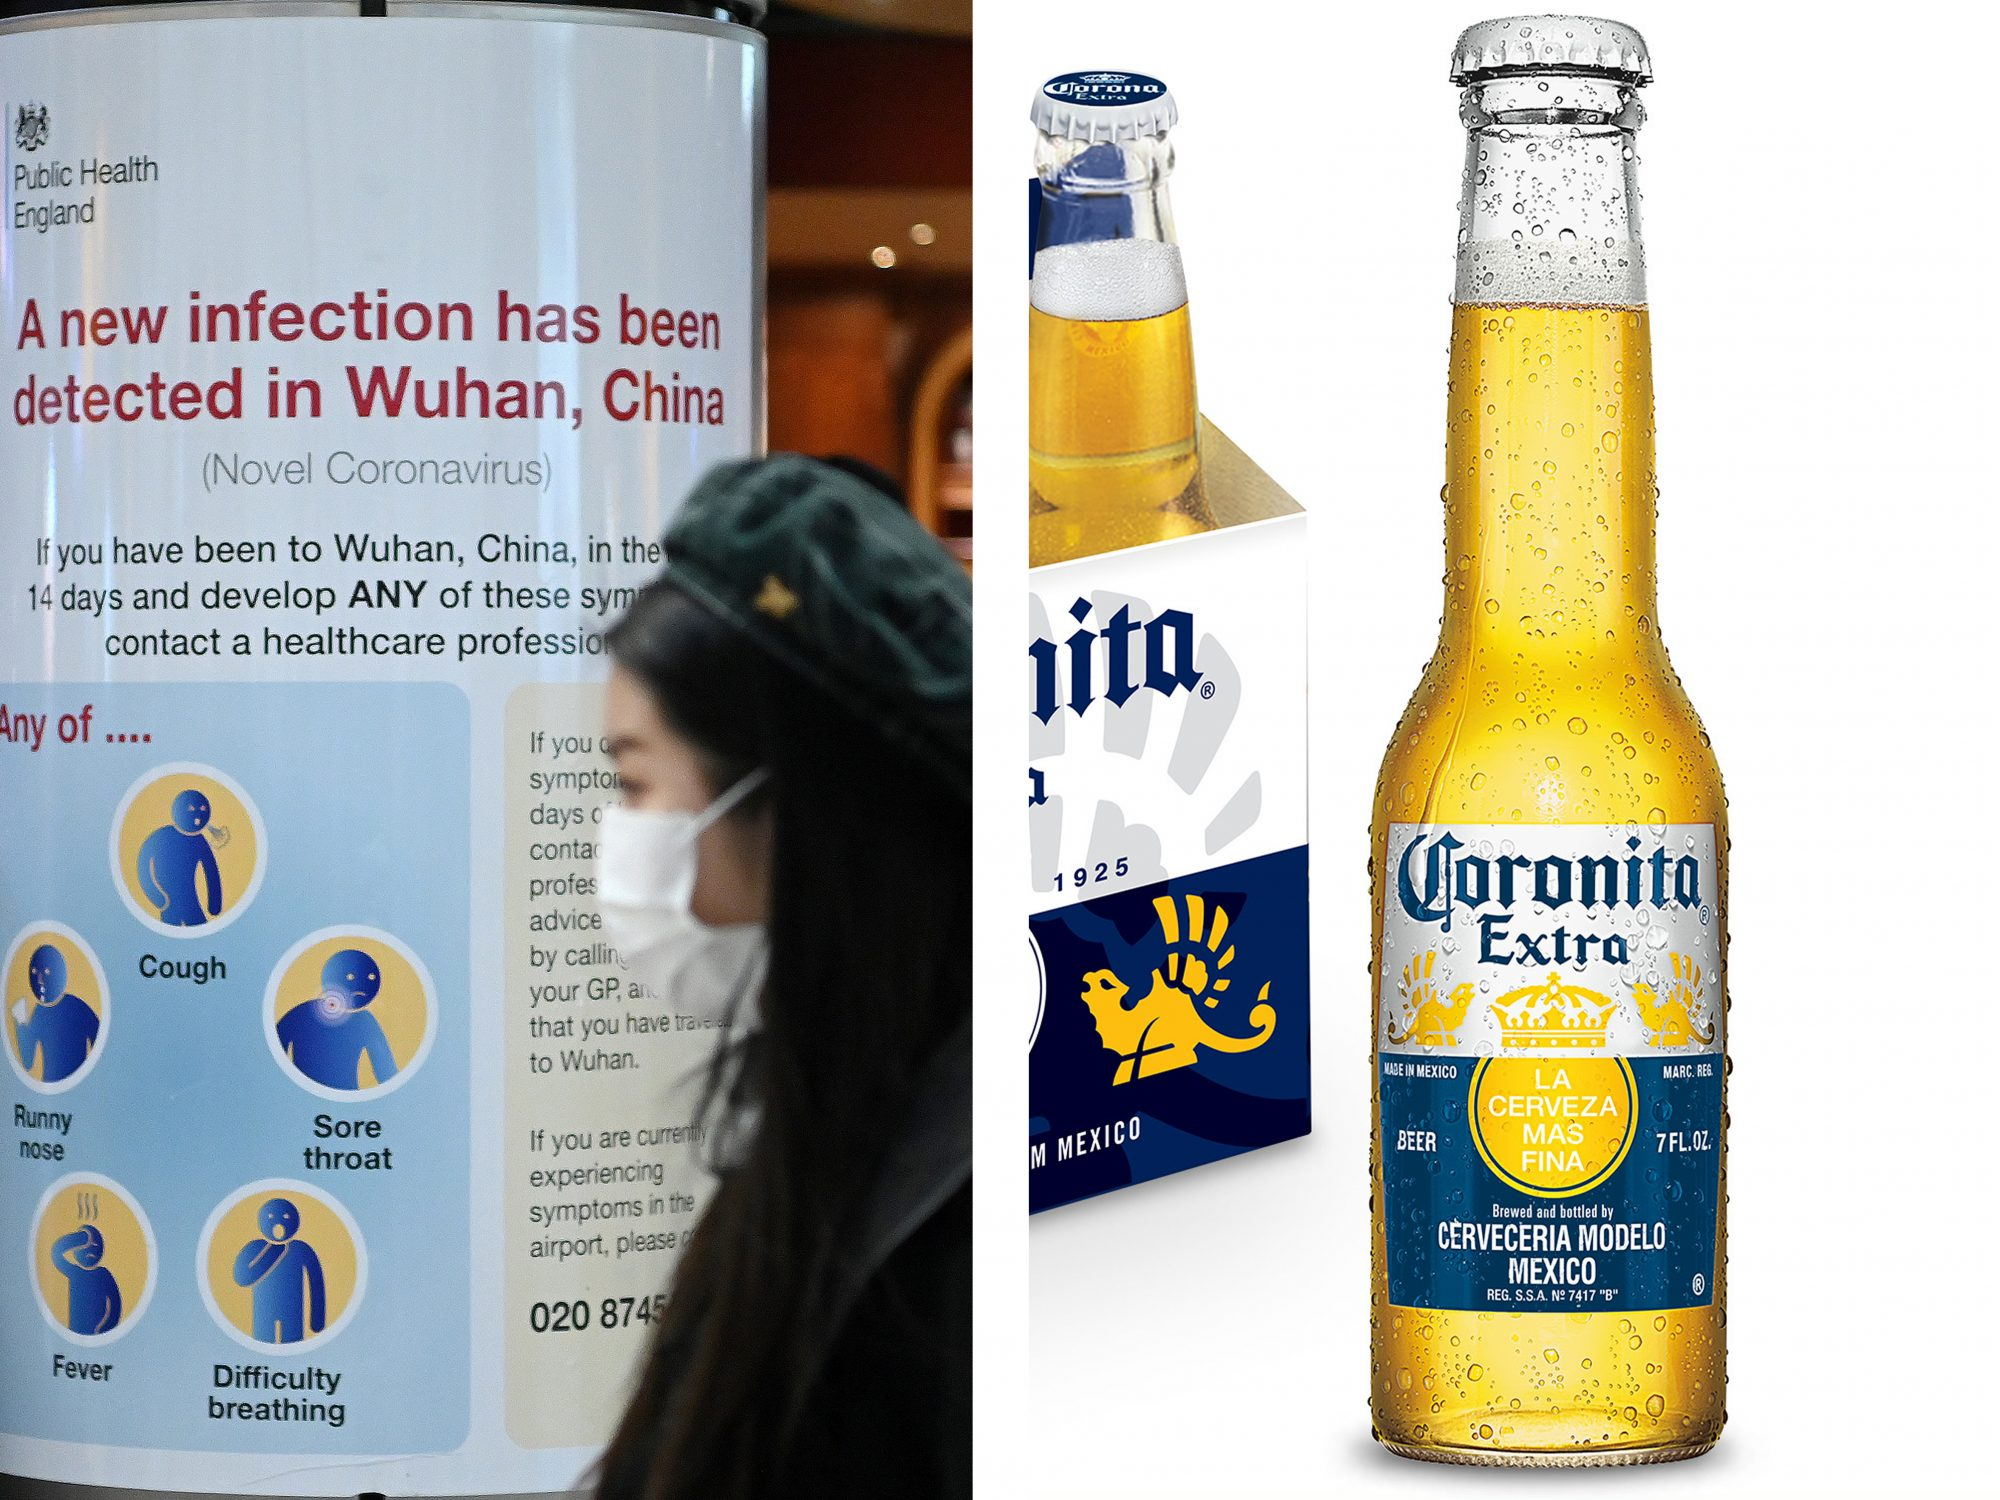 012920_Getty Coronavirus Corona Beer image